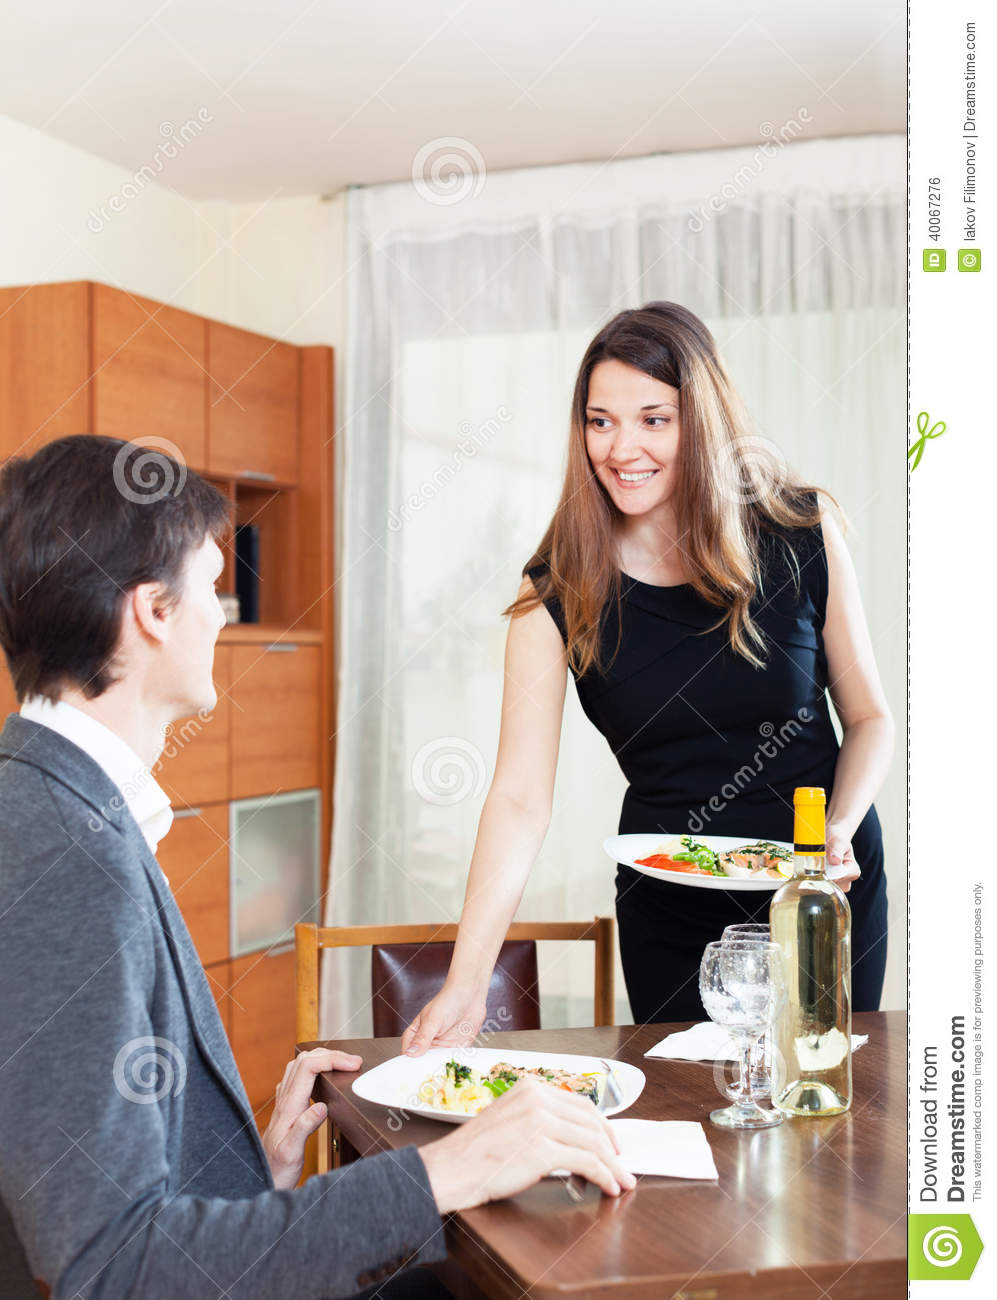 naked woman on dinner table